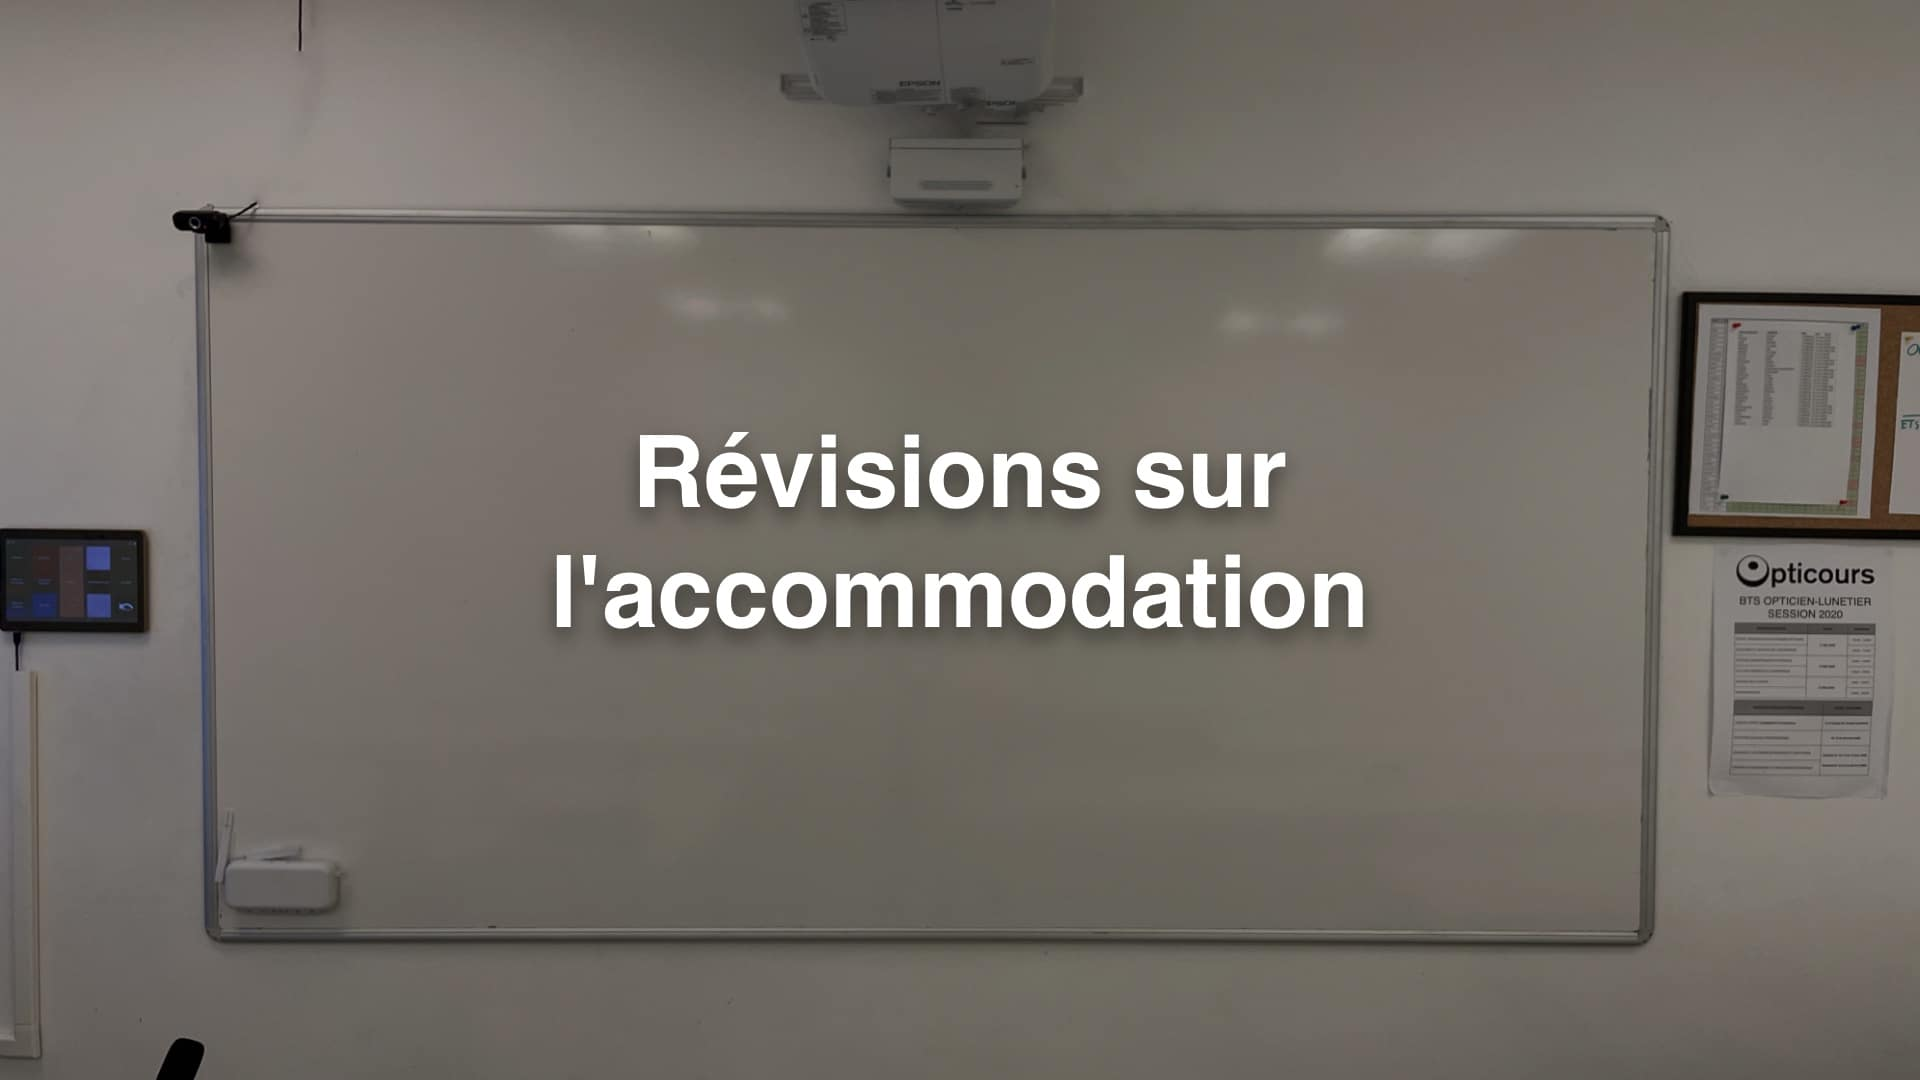 Révisions sur l'accommodation